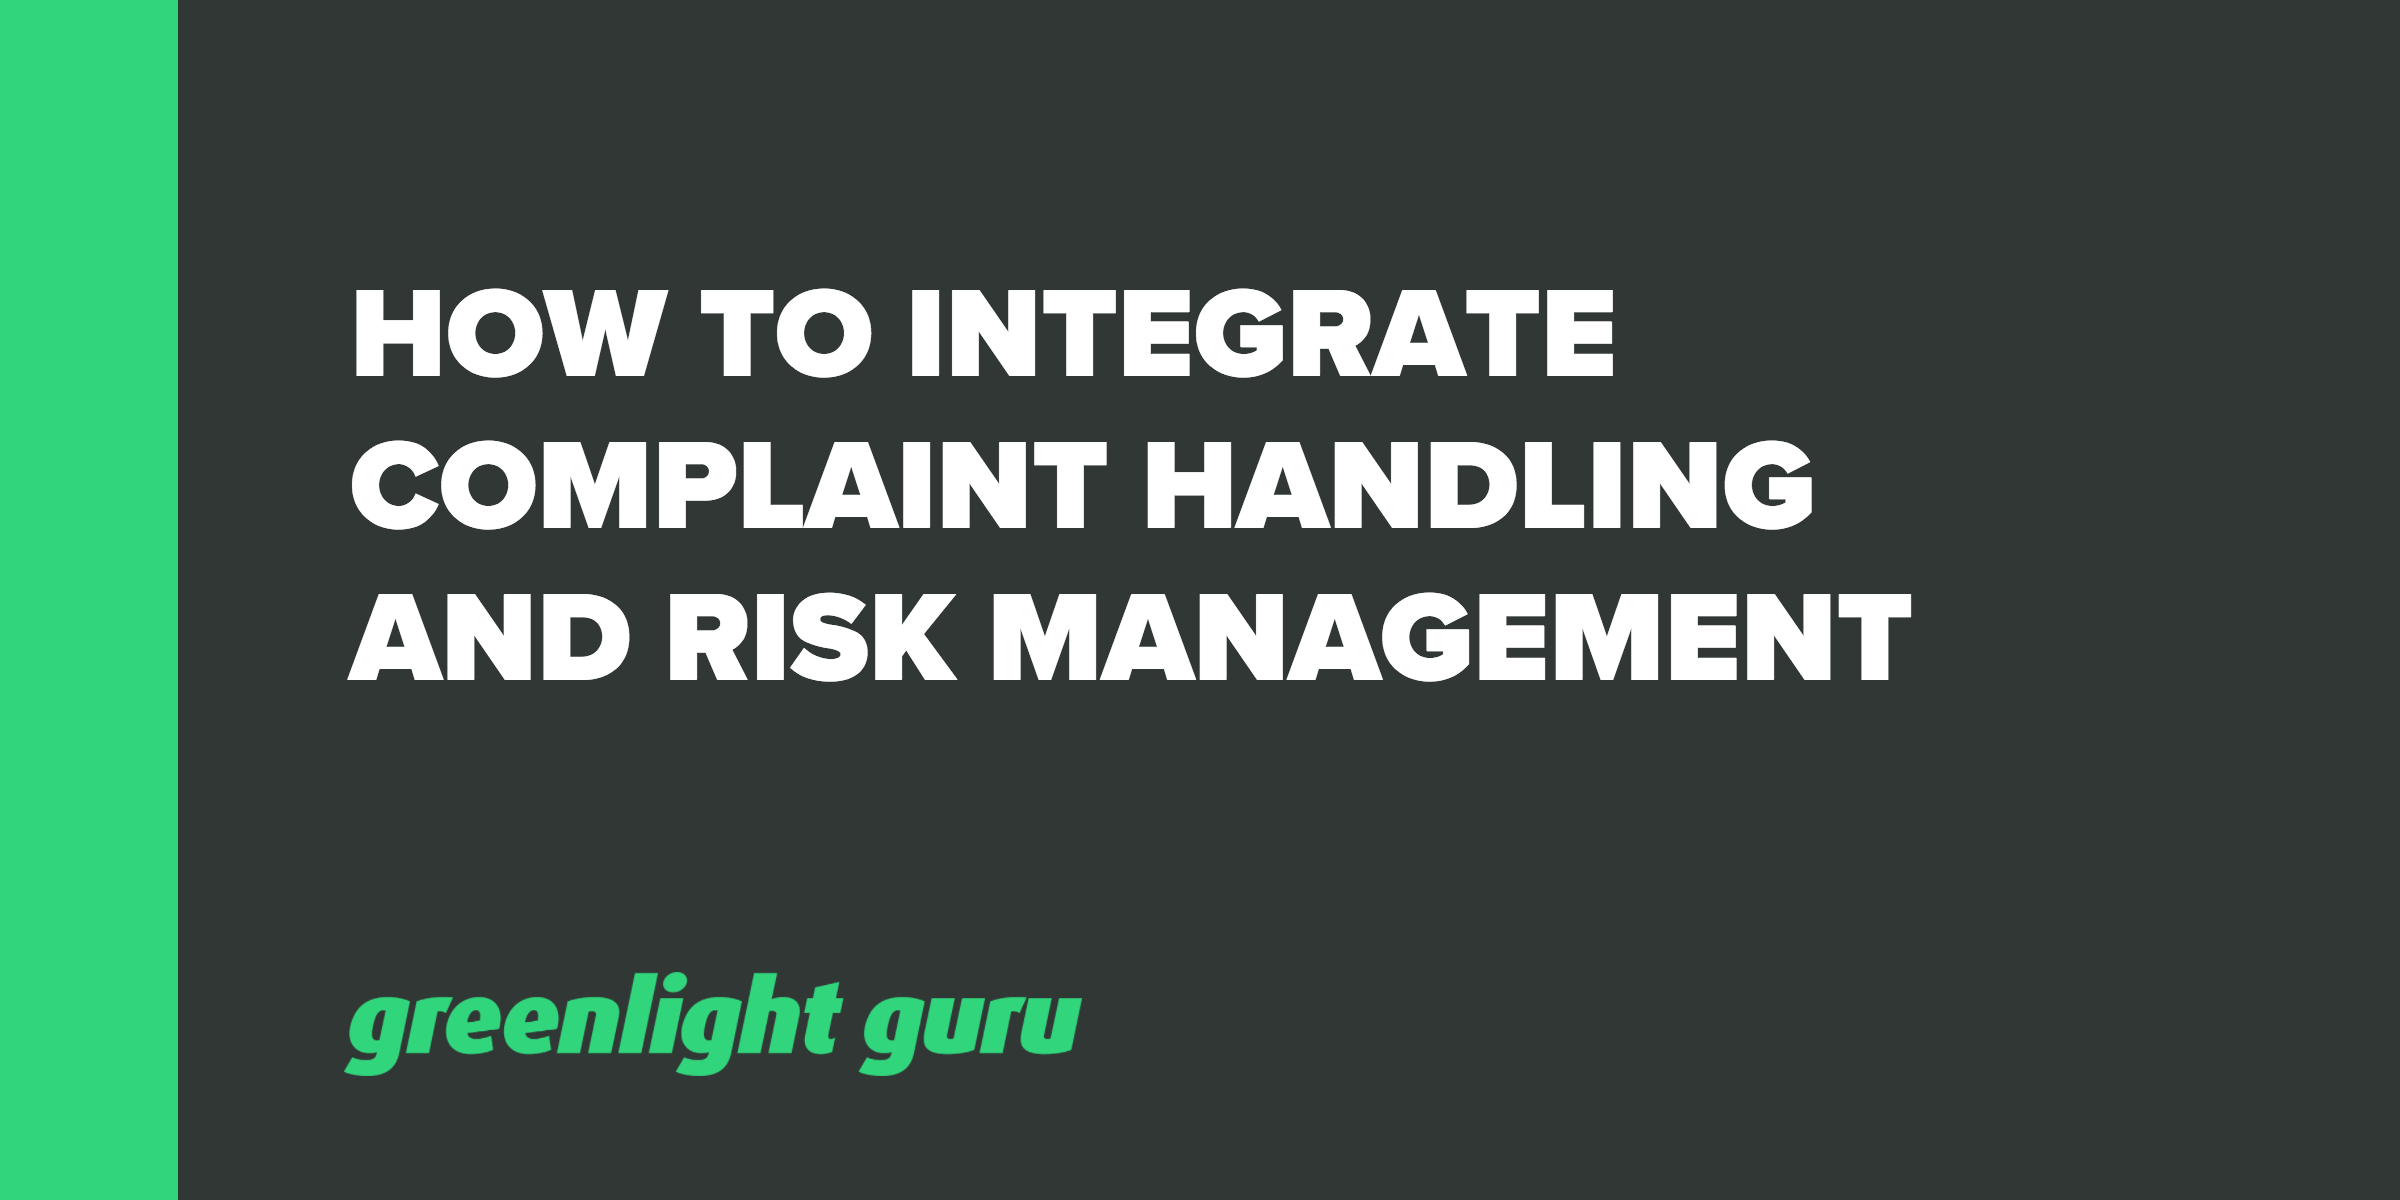 How to Integrate Complaint Handling and Risk Management - Featured Image